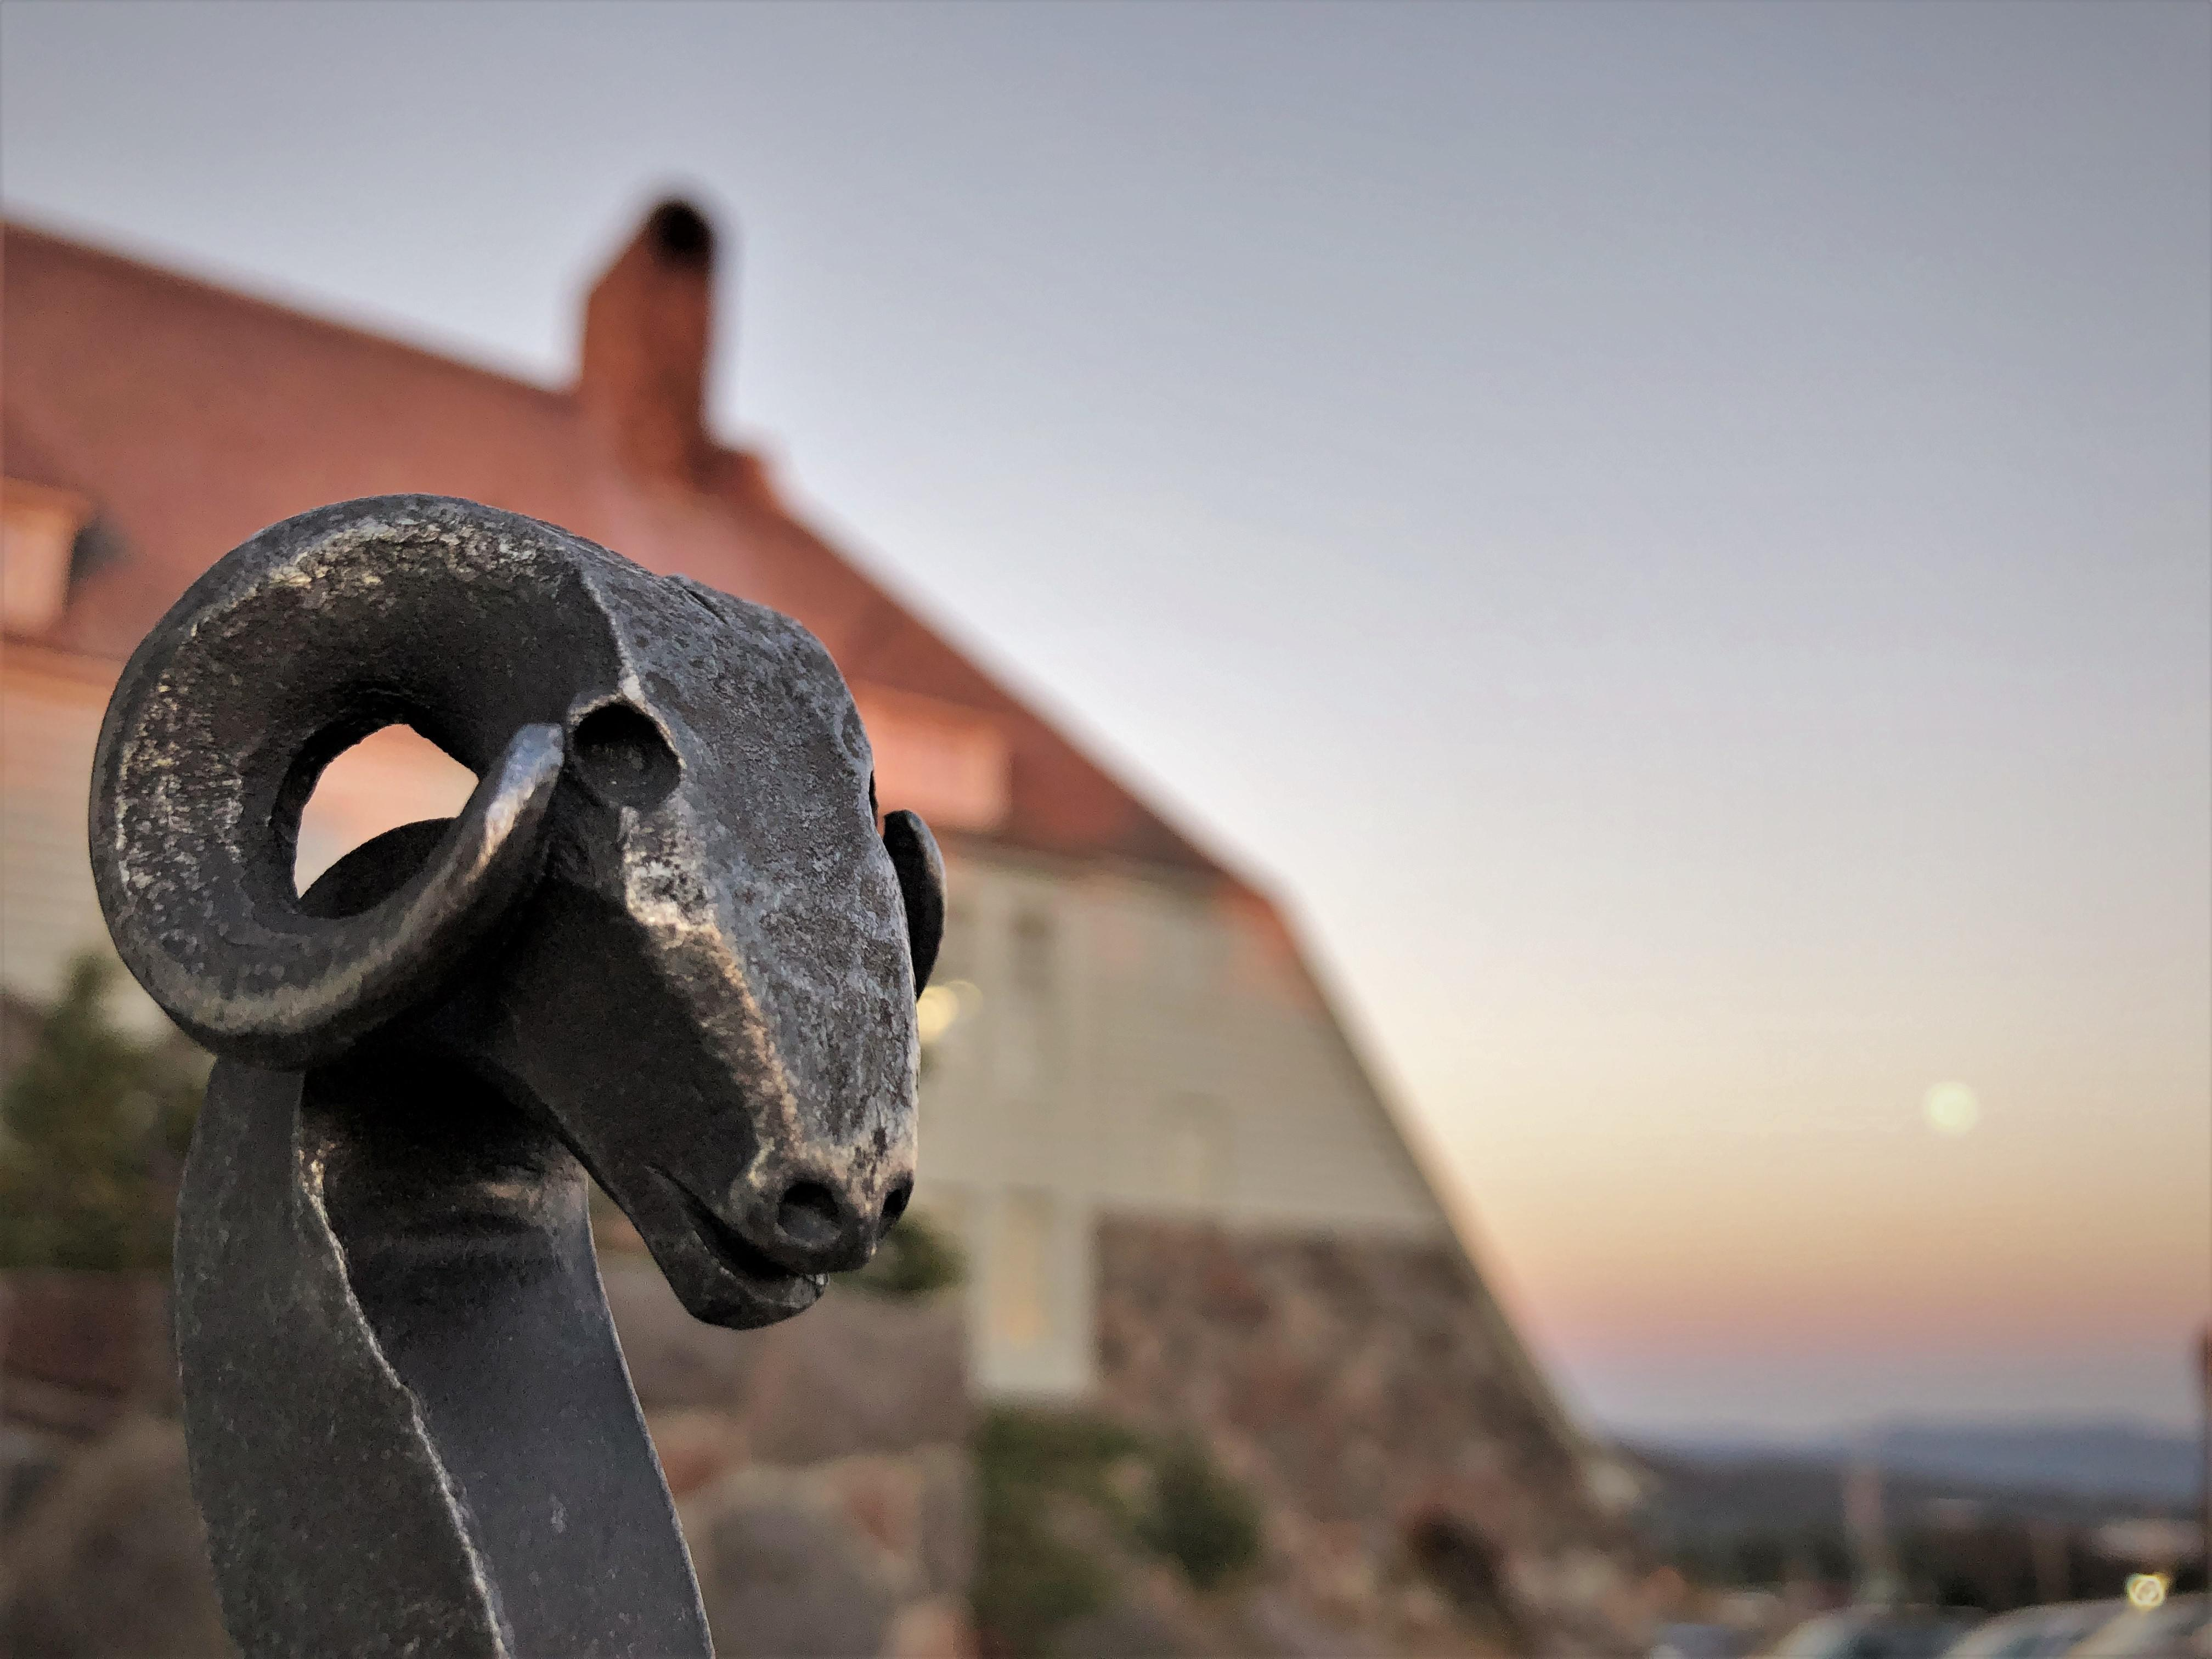 A ramshead hand-forged by Darryl Nelson has become a symbol of Timberline Lodge.